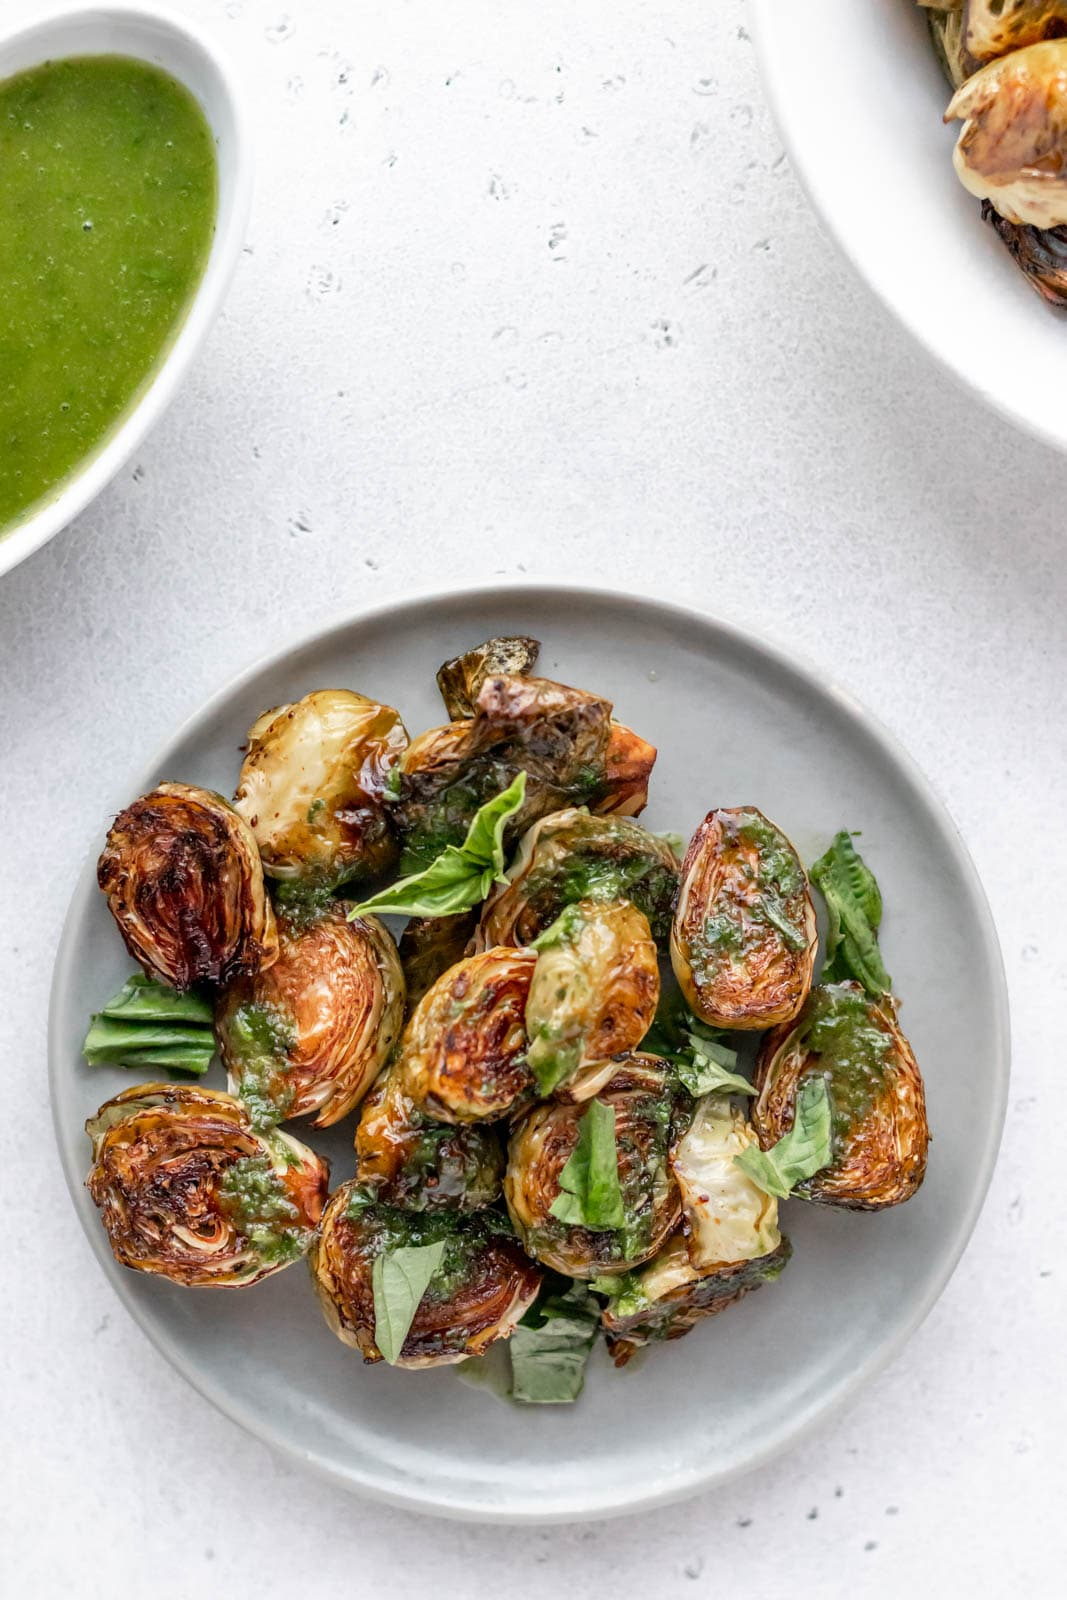 basil dipping sauce and roasted brussels sprouts